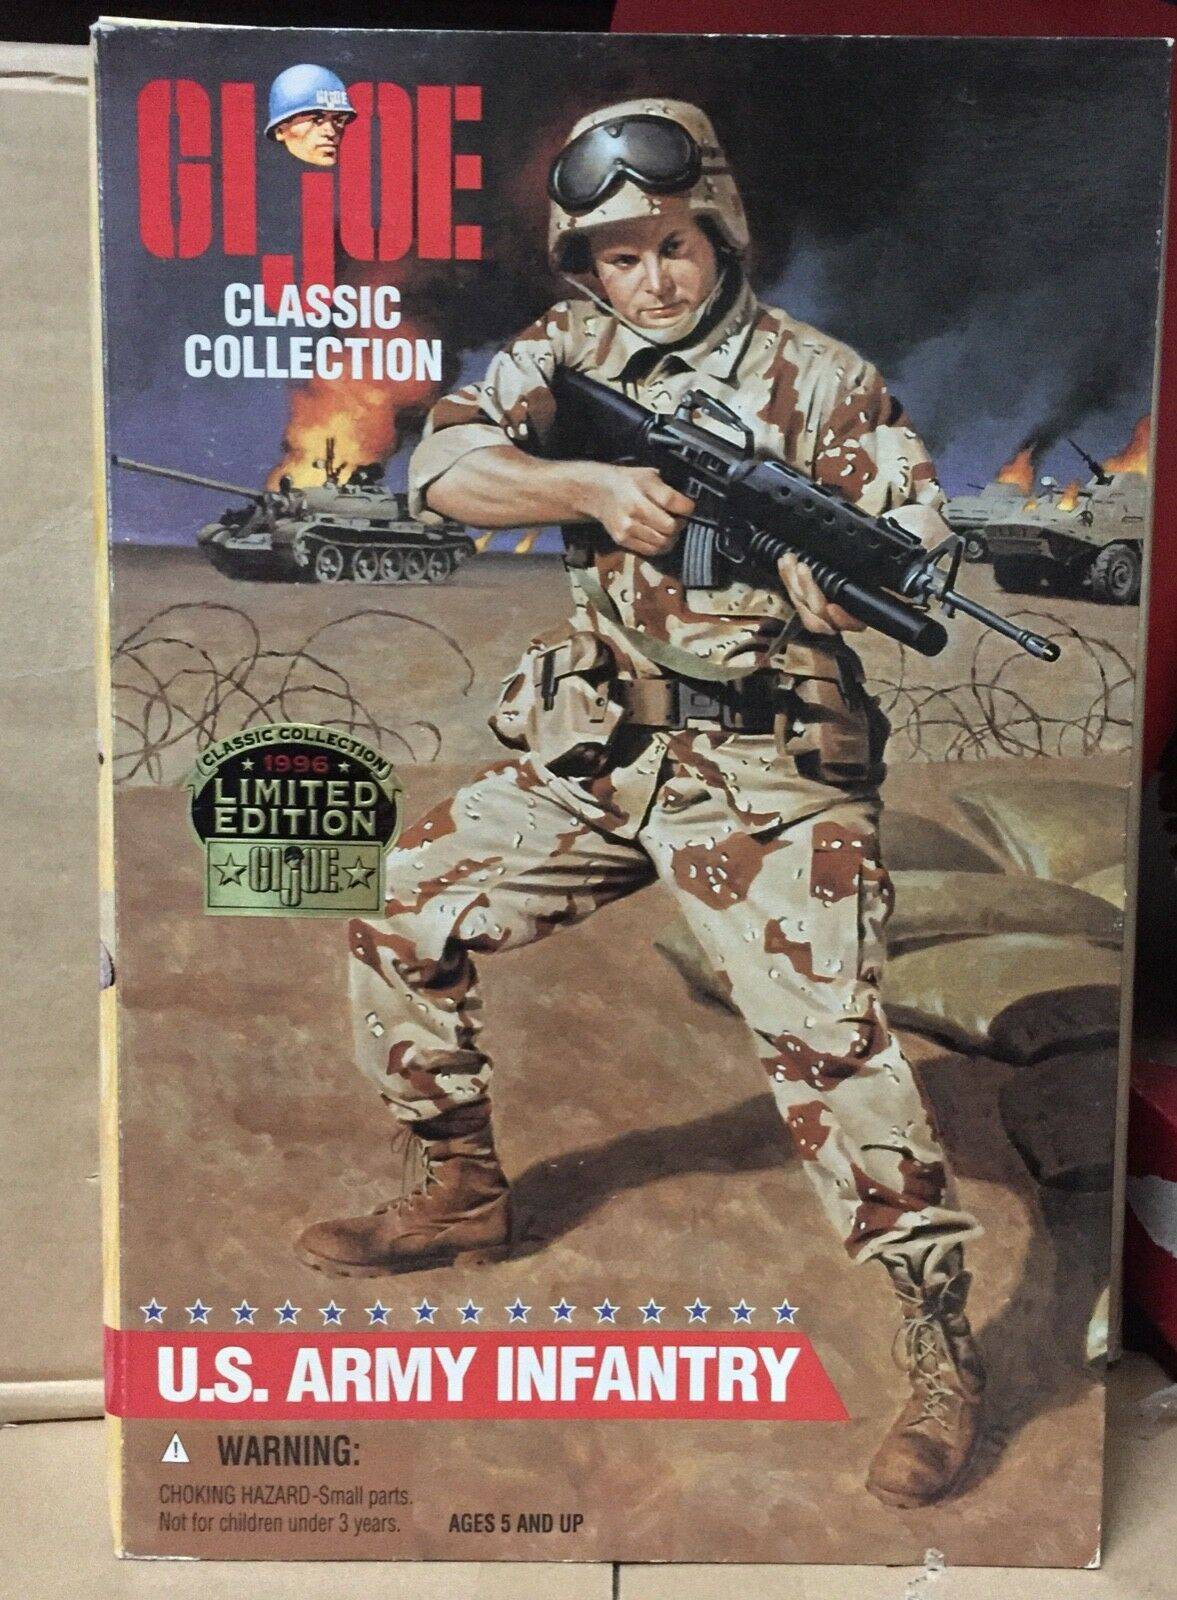 GI JOE  CLASSIC COLLECTION U.S. ARMY INFANTRY